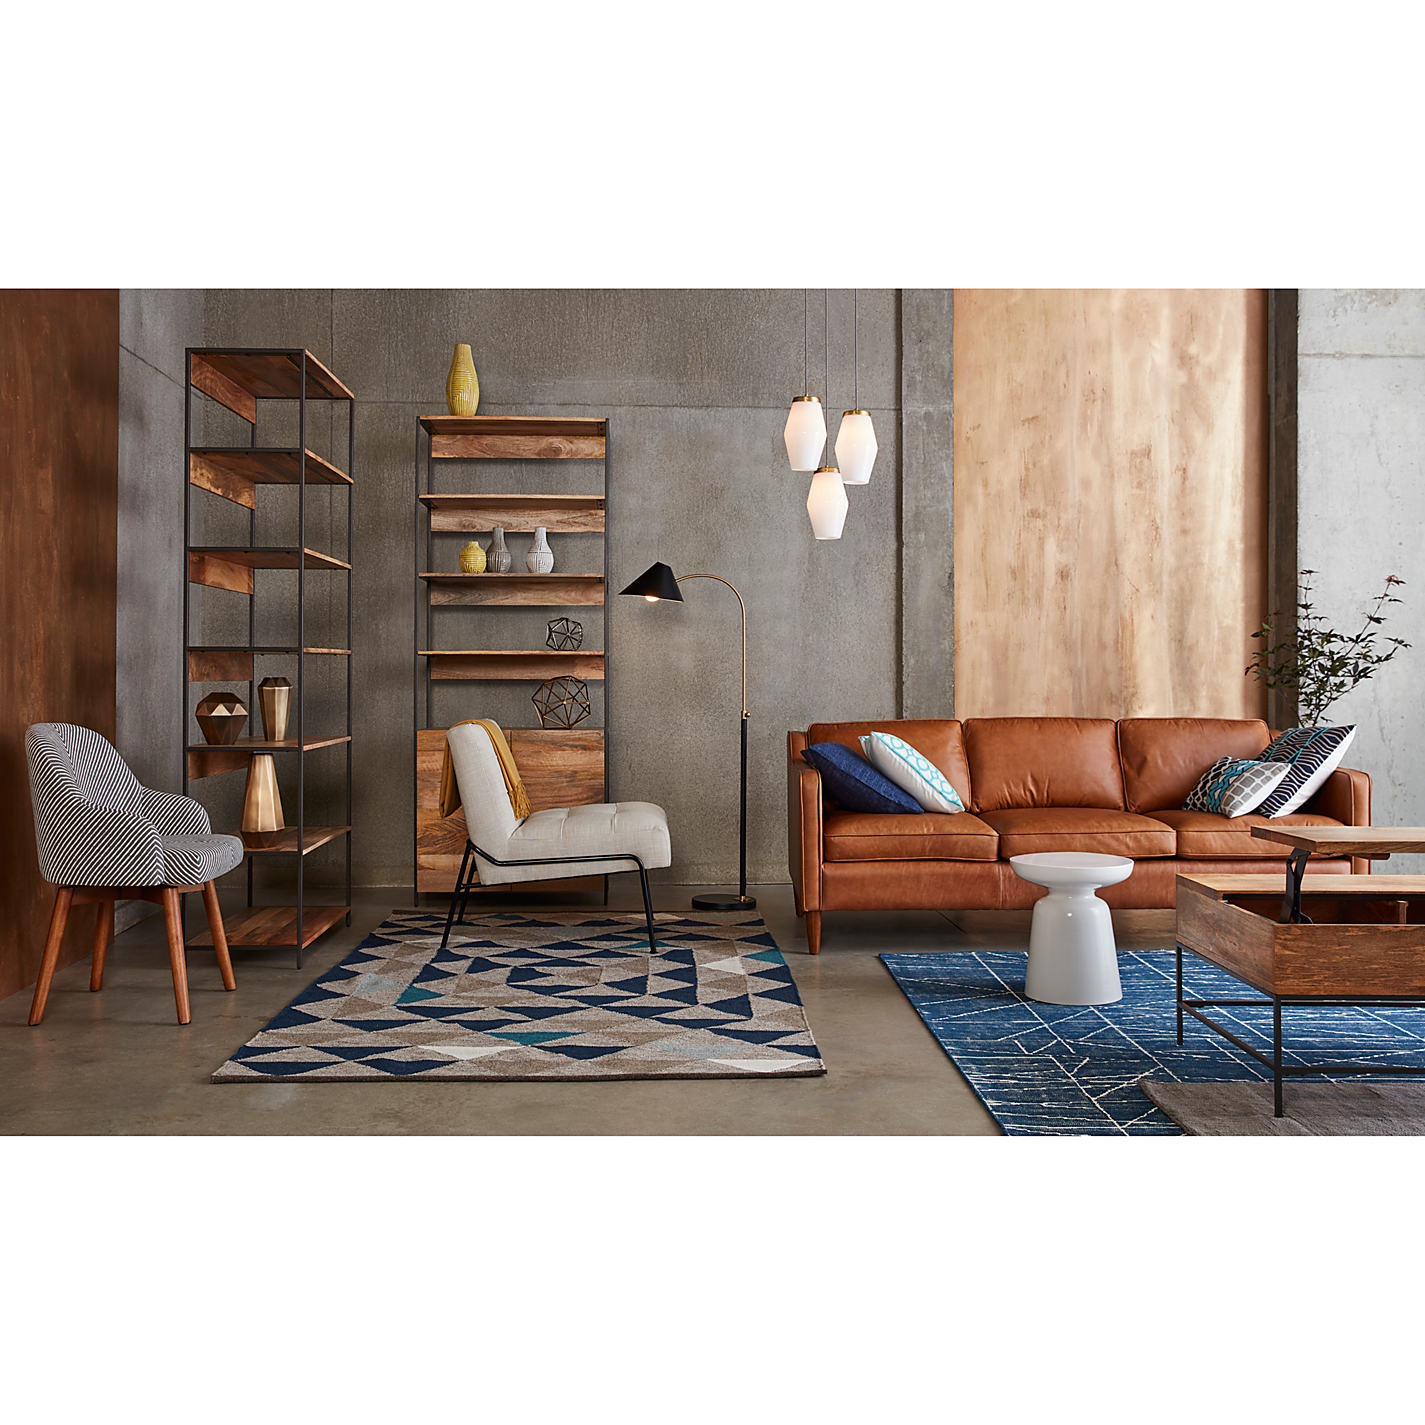 West Elm Hamilton 3 Seater Sofa Sienna Online At Johnlewis Com